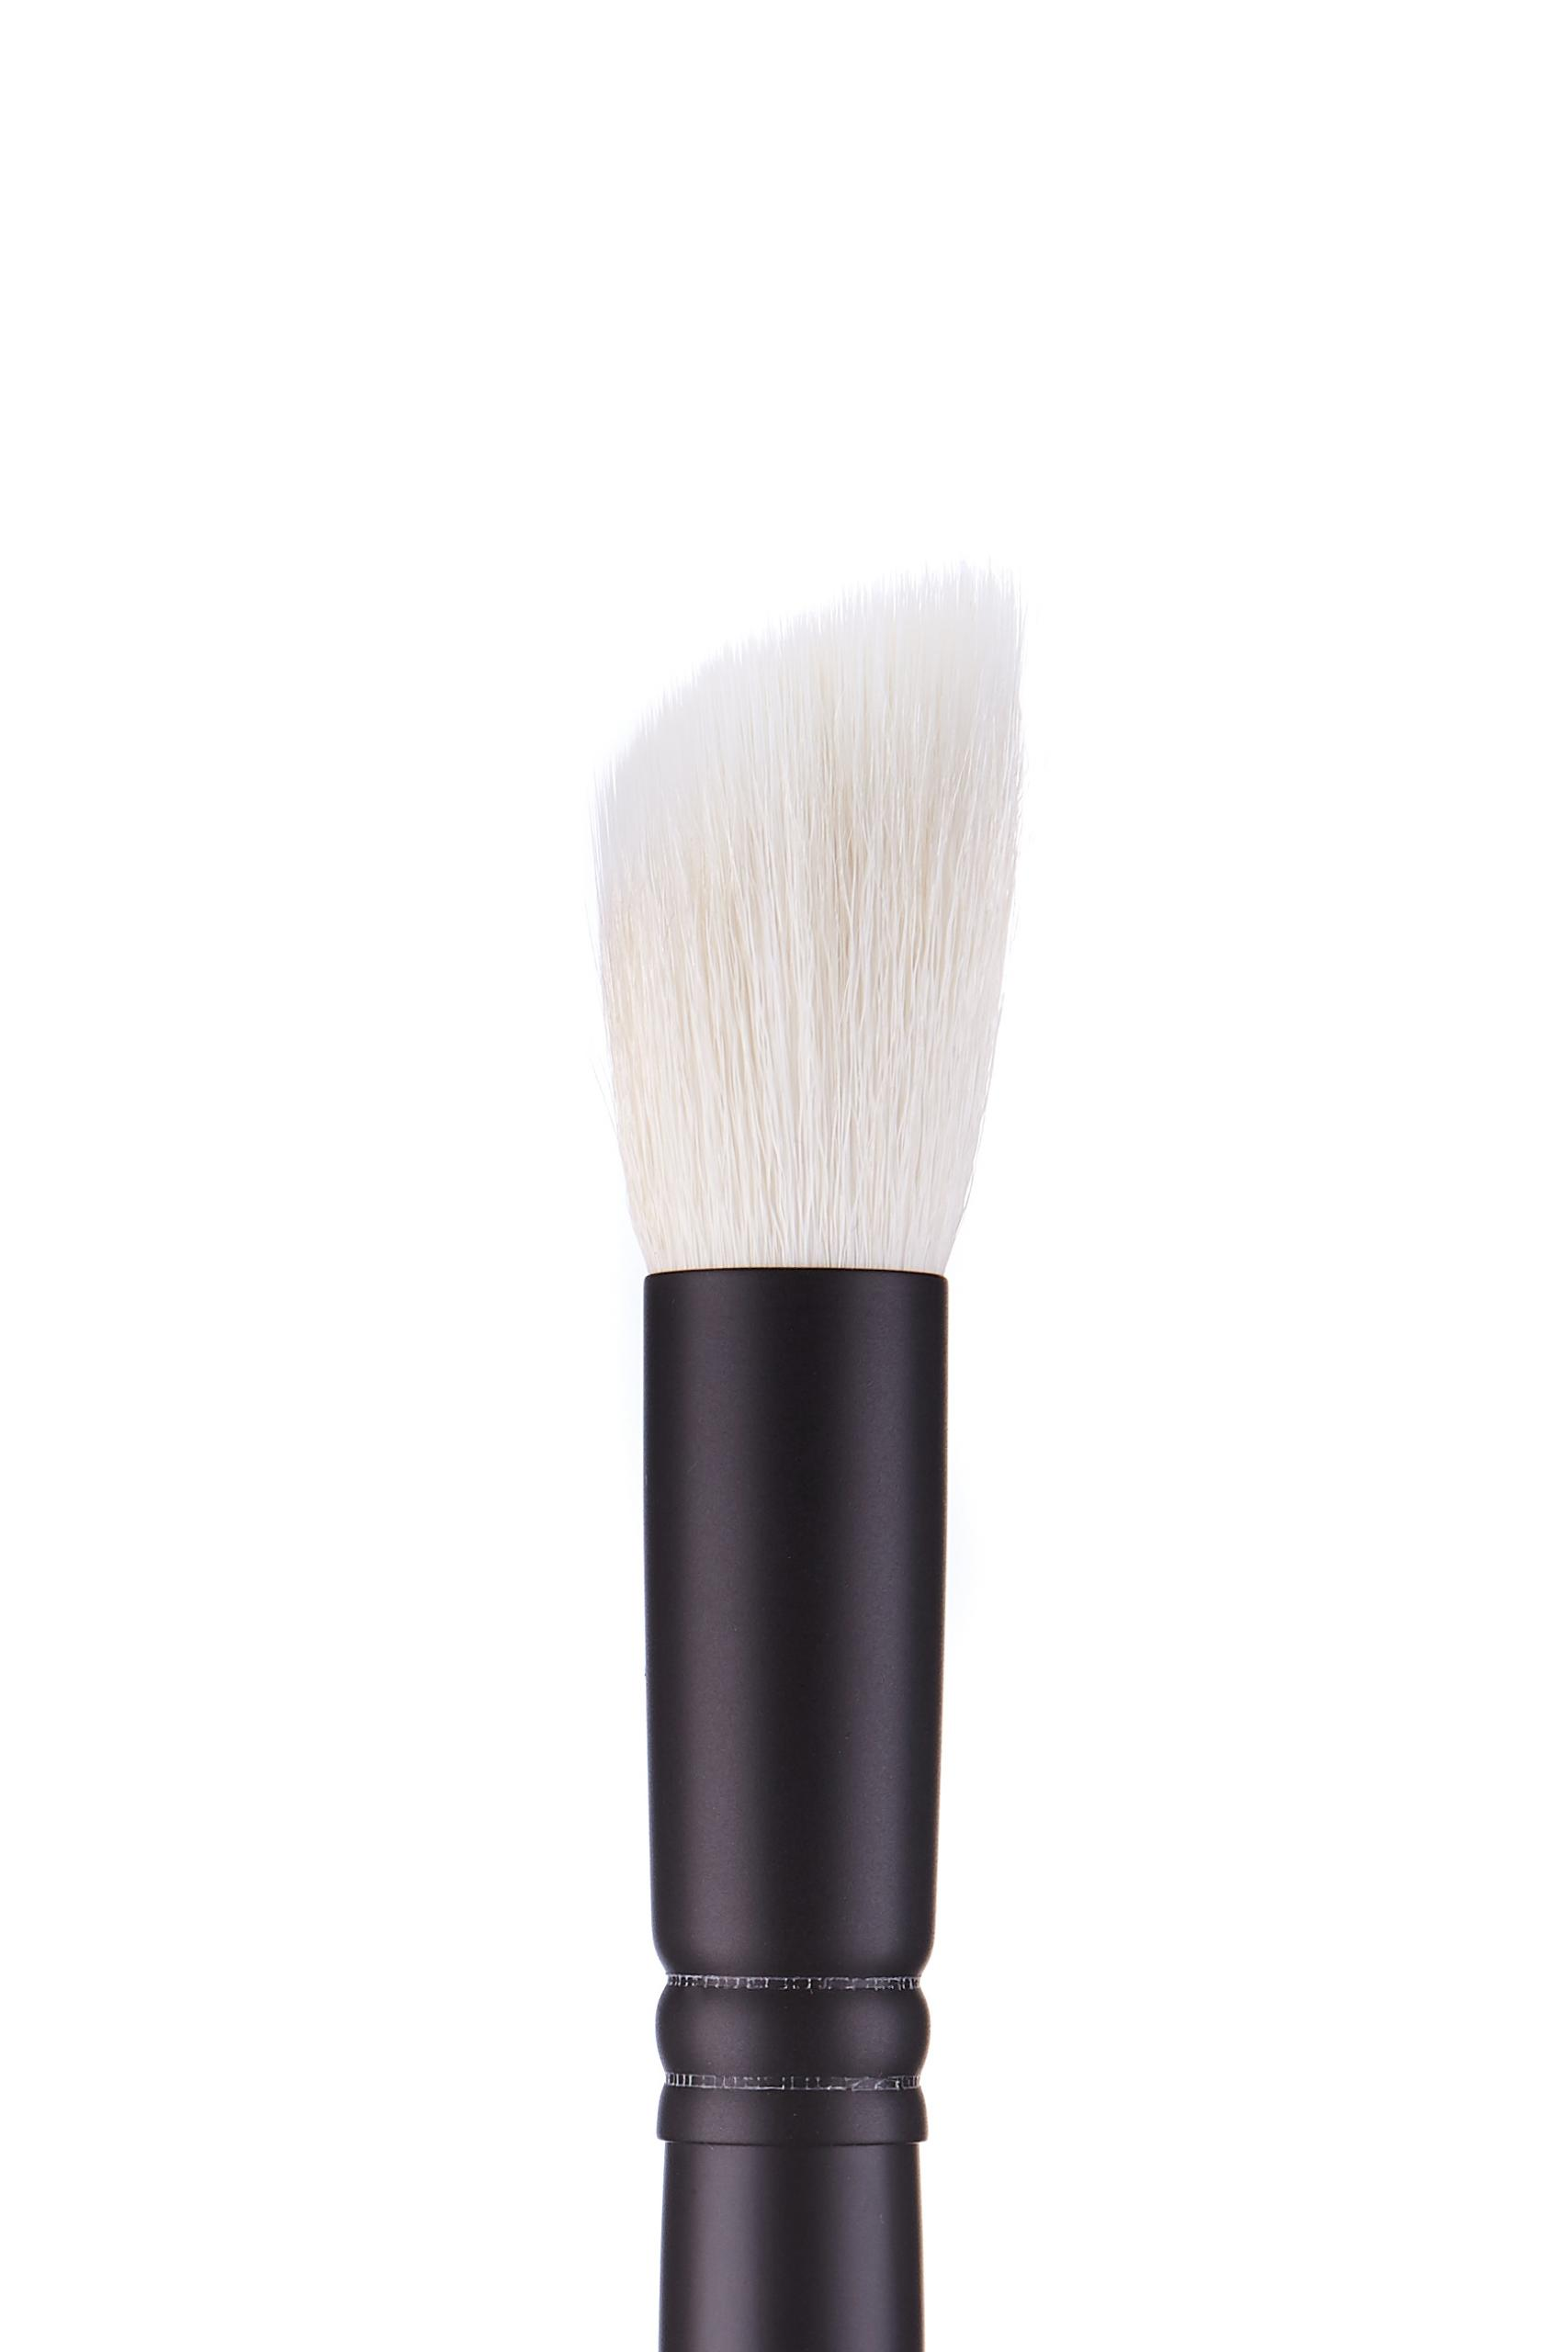 Annbeauty Katakana S26 Sculpting Brush & Cream Blush Pile